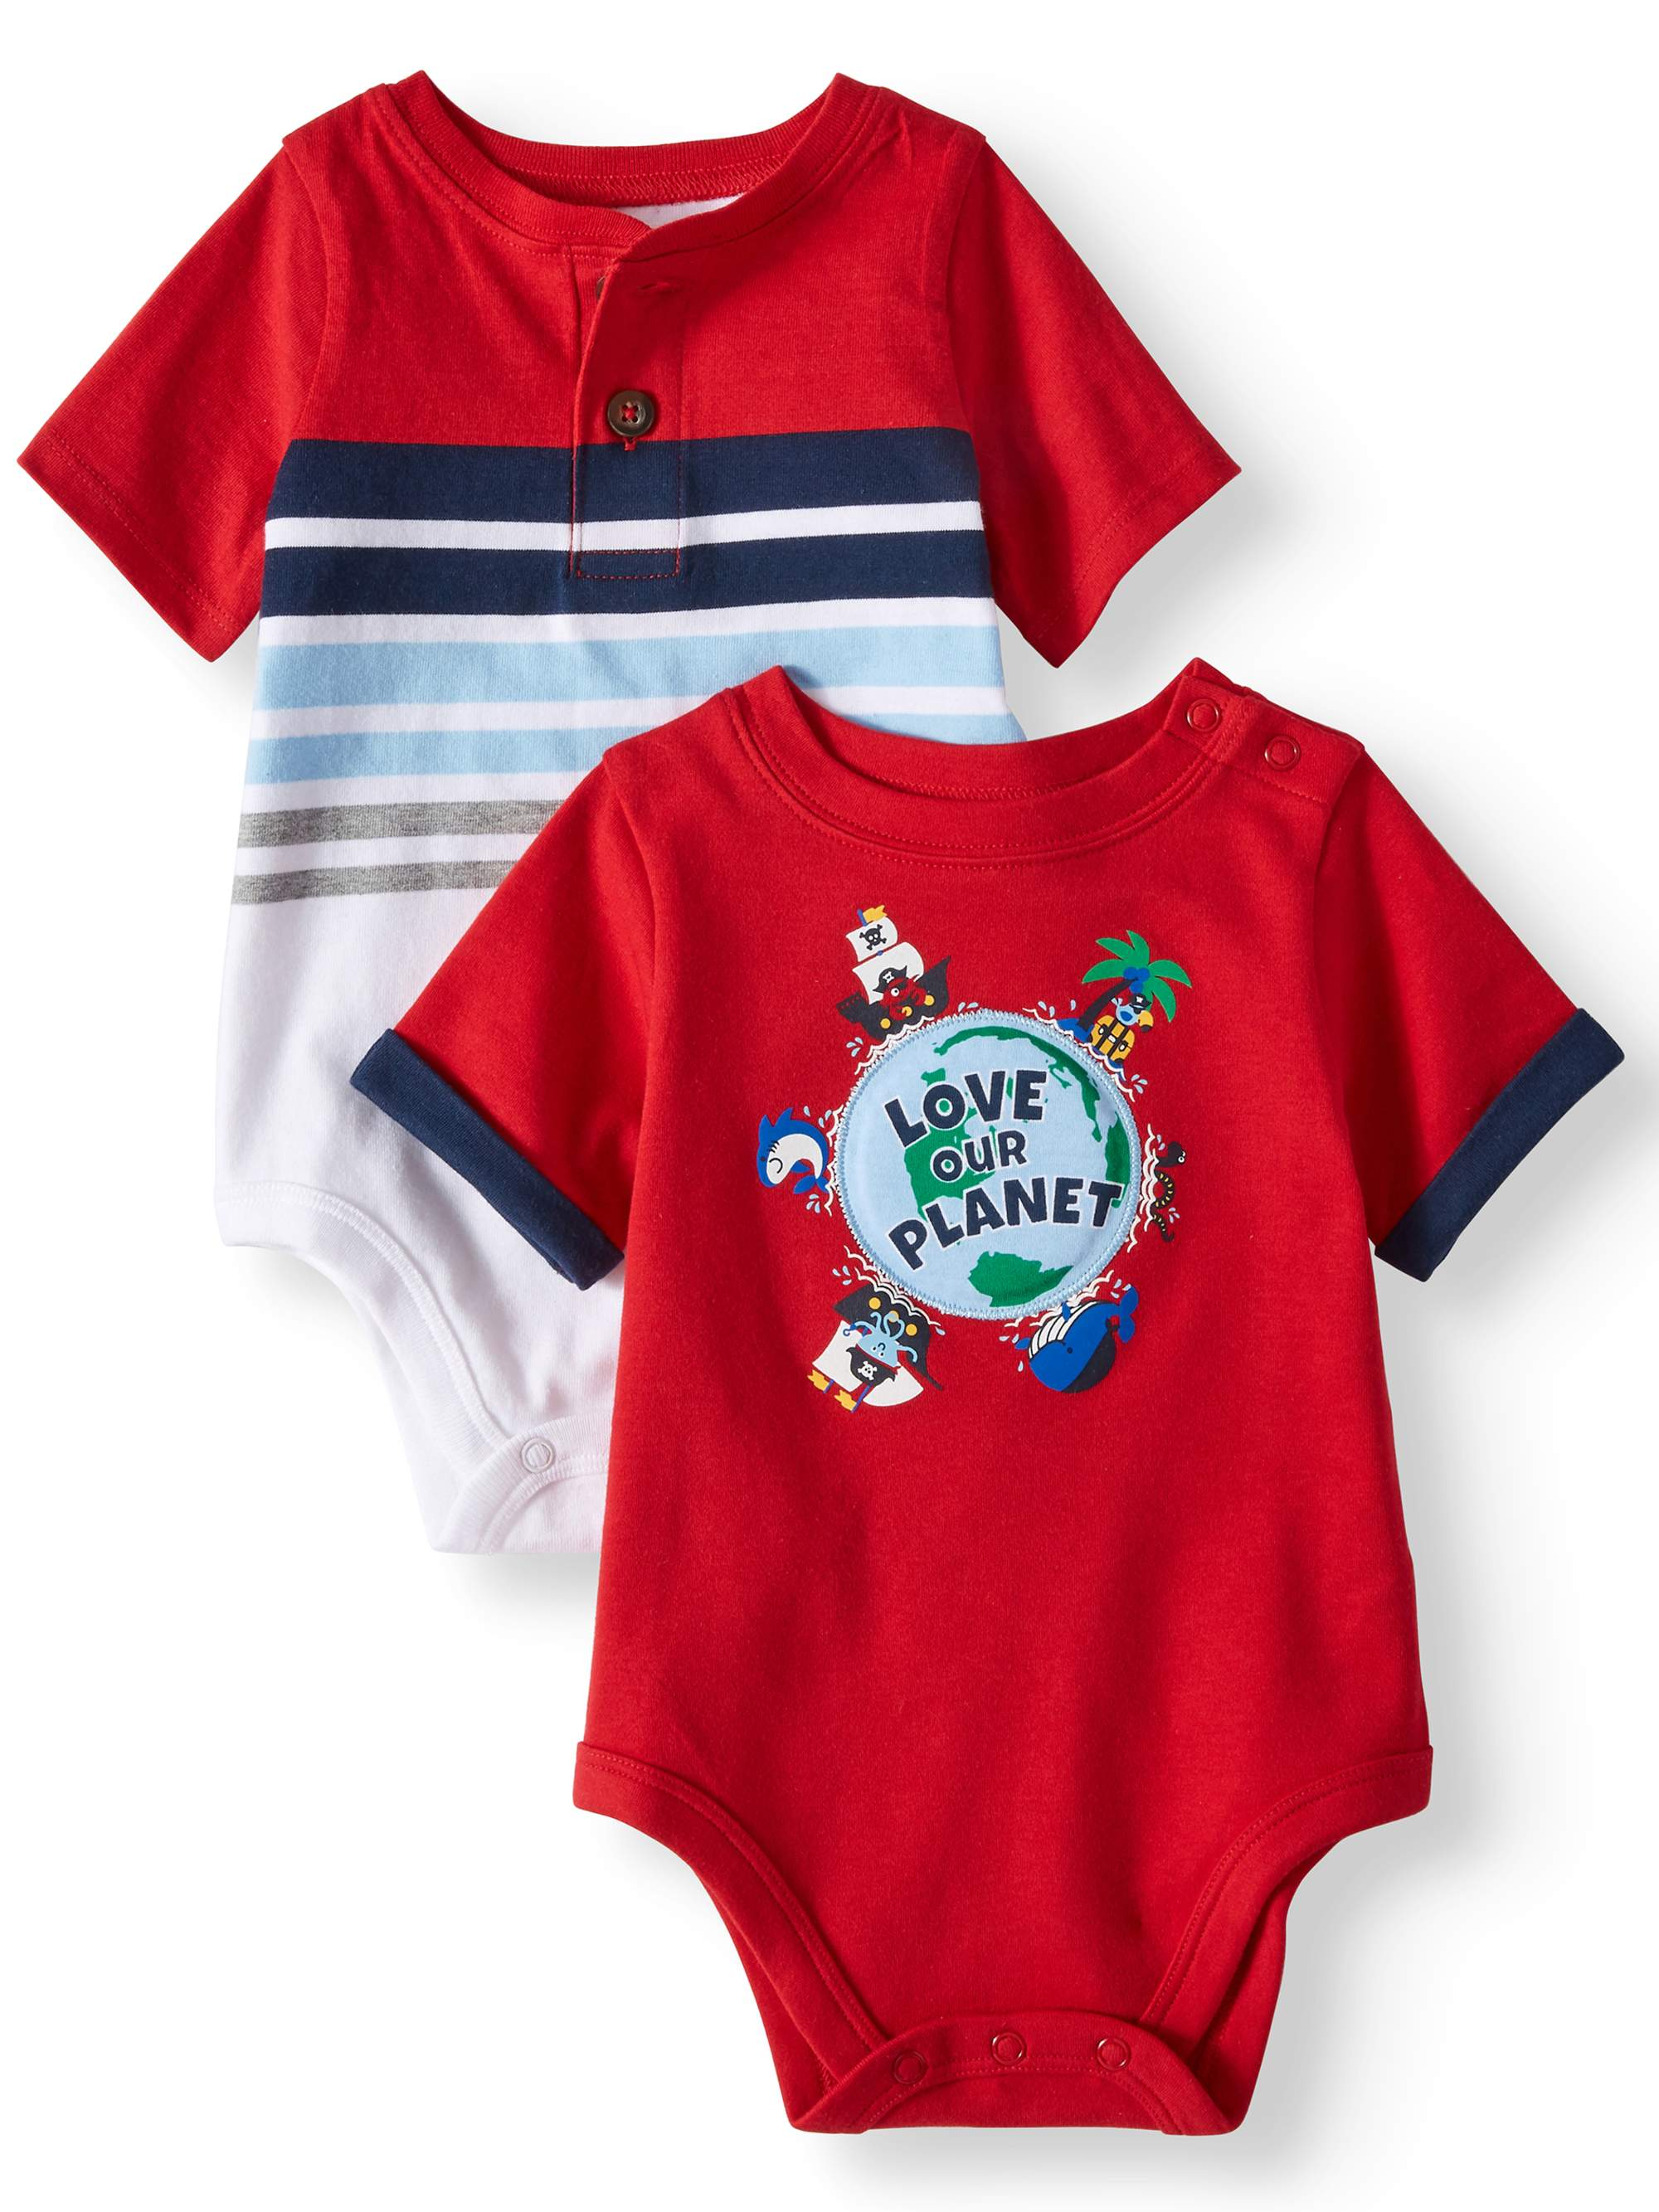 Baby Boys' Striped Henley and Graphic Bodysuits, 2-Pack